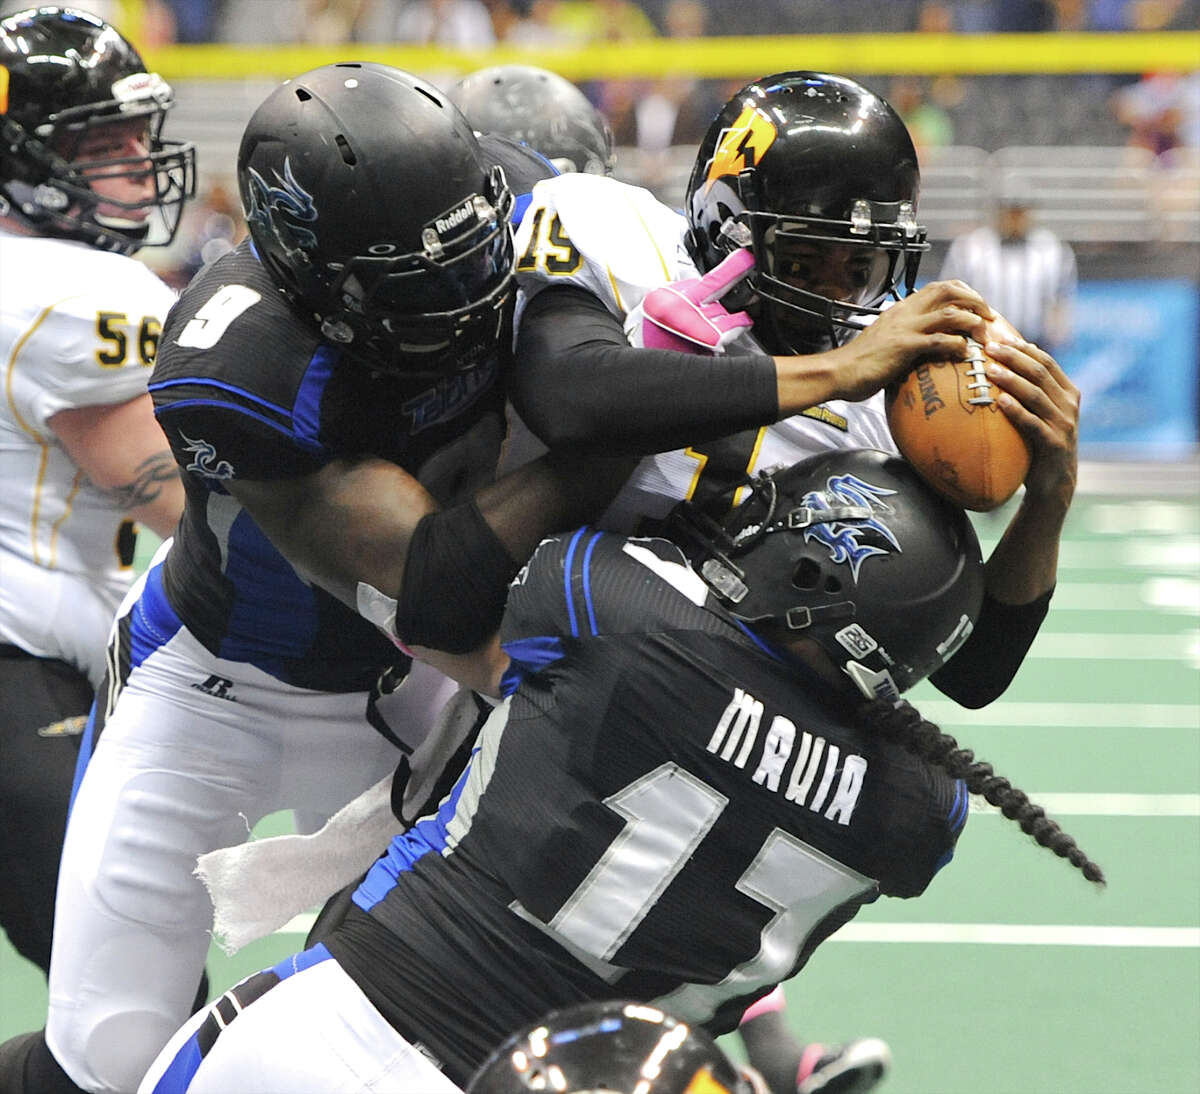 San Antonio Talons' Jerry Brown (9) and Wes Mauia (17) sack Pittsburgh Power quarterback Bryan Randall (19) during an Arena Football League (AFL) game between the San Antonio Talons and the Pittsburgh Power on May 12, 2012 at the Alamodome in San Antonio Texas. John Albright / Special to the Express-News.